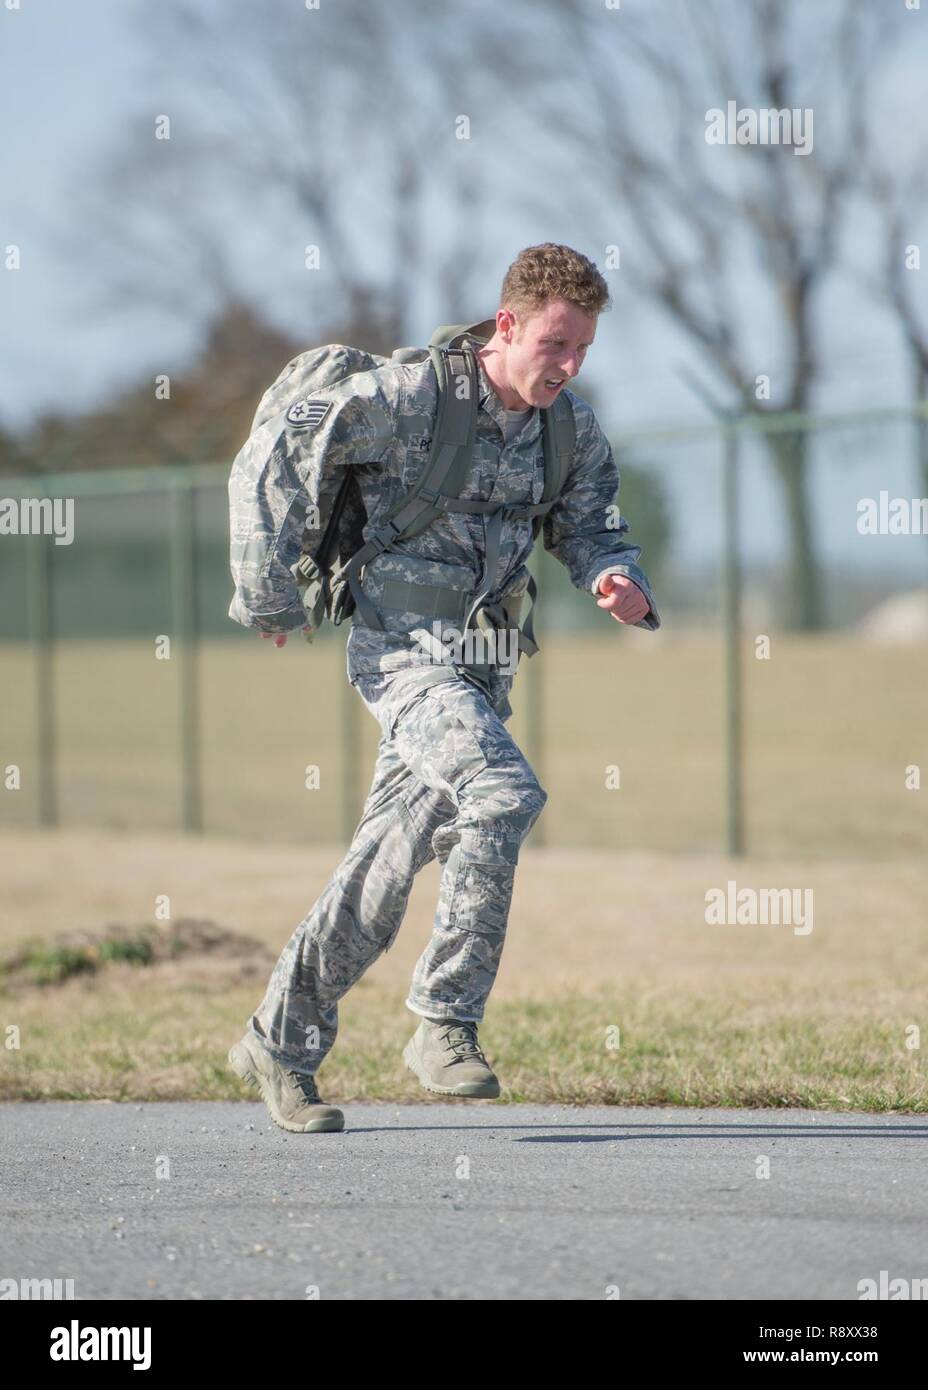 811th Security Forces Squadron High Resolution Stock Photography And Images Alamy